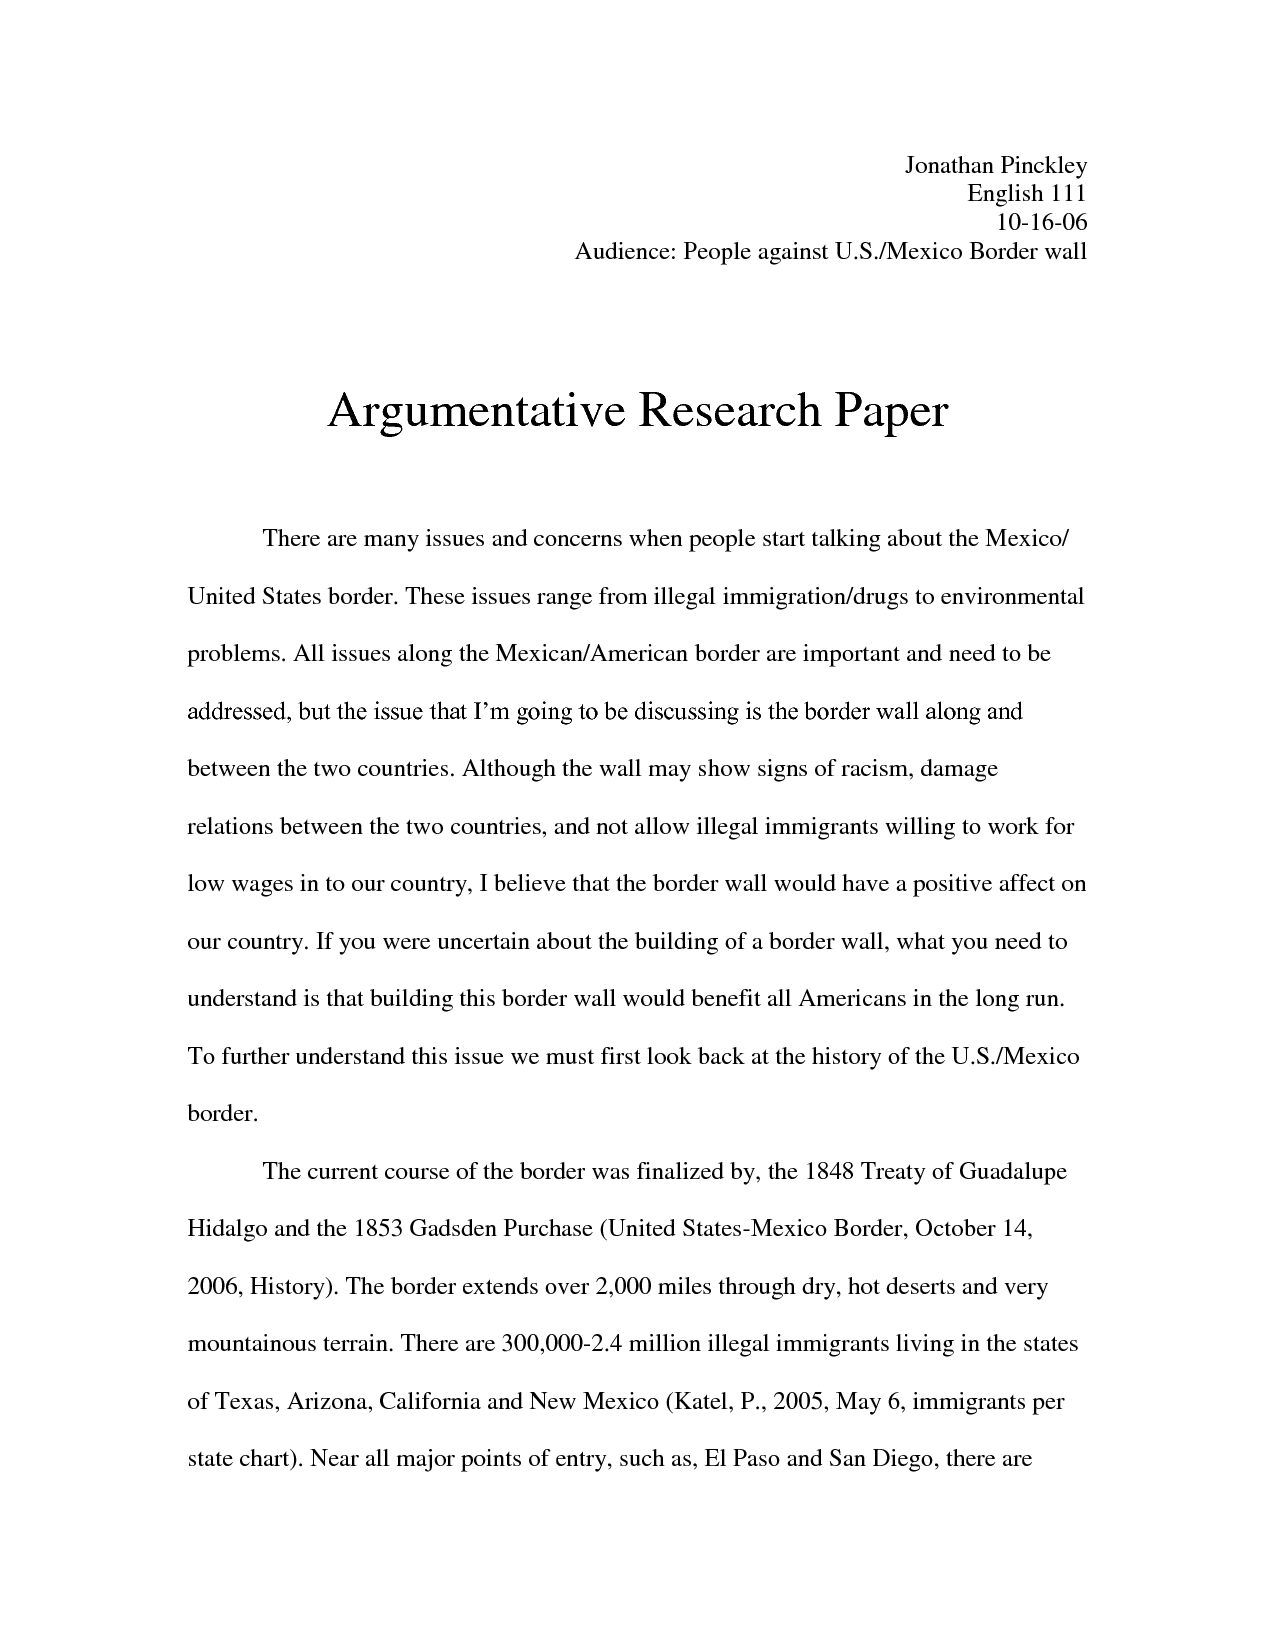 016 Research Paper Uncategorized Debate20y Argumentative Thesis High School Topics Sentence Starters Outline Worksheet Structure20 For Striking An Easy Essay Medical Interesting Full